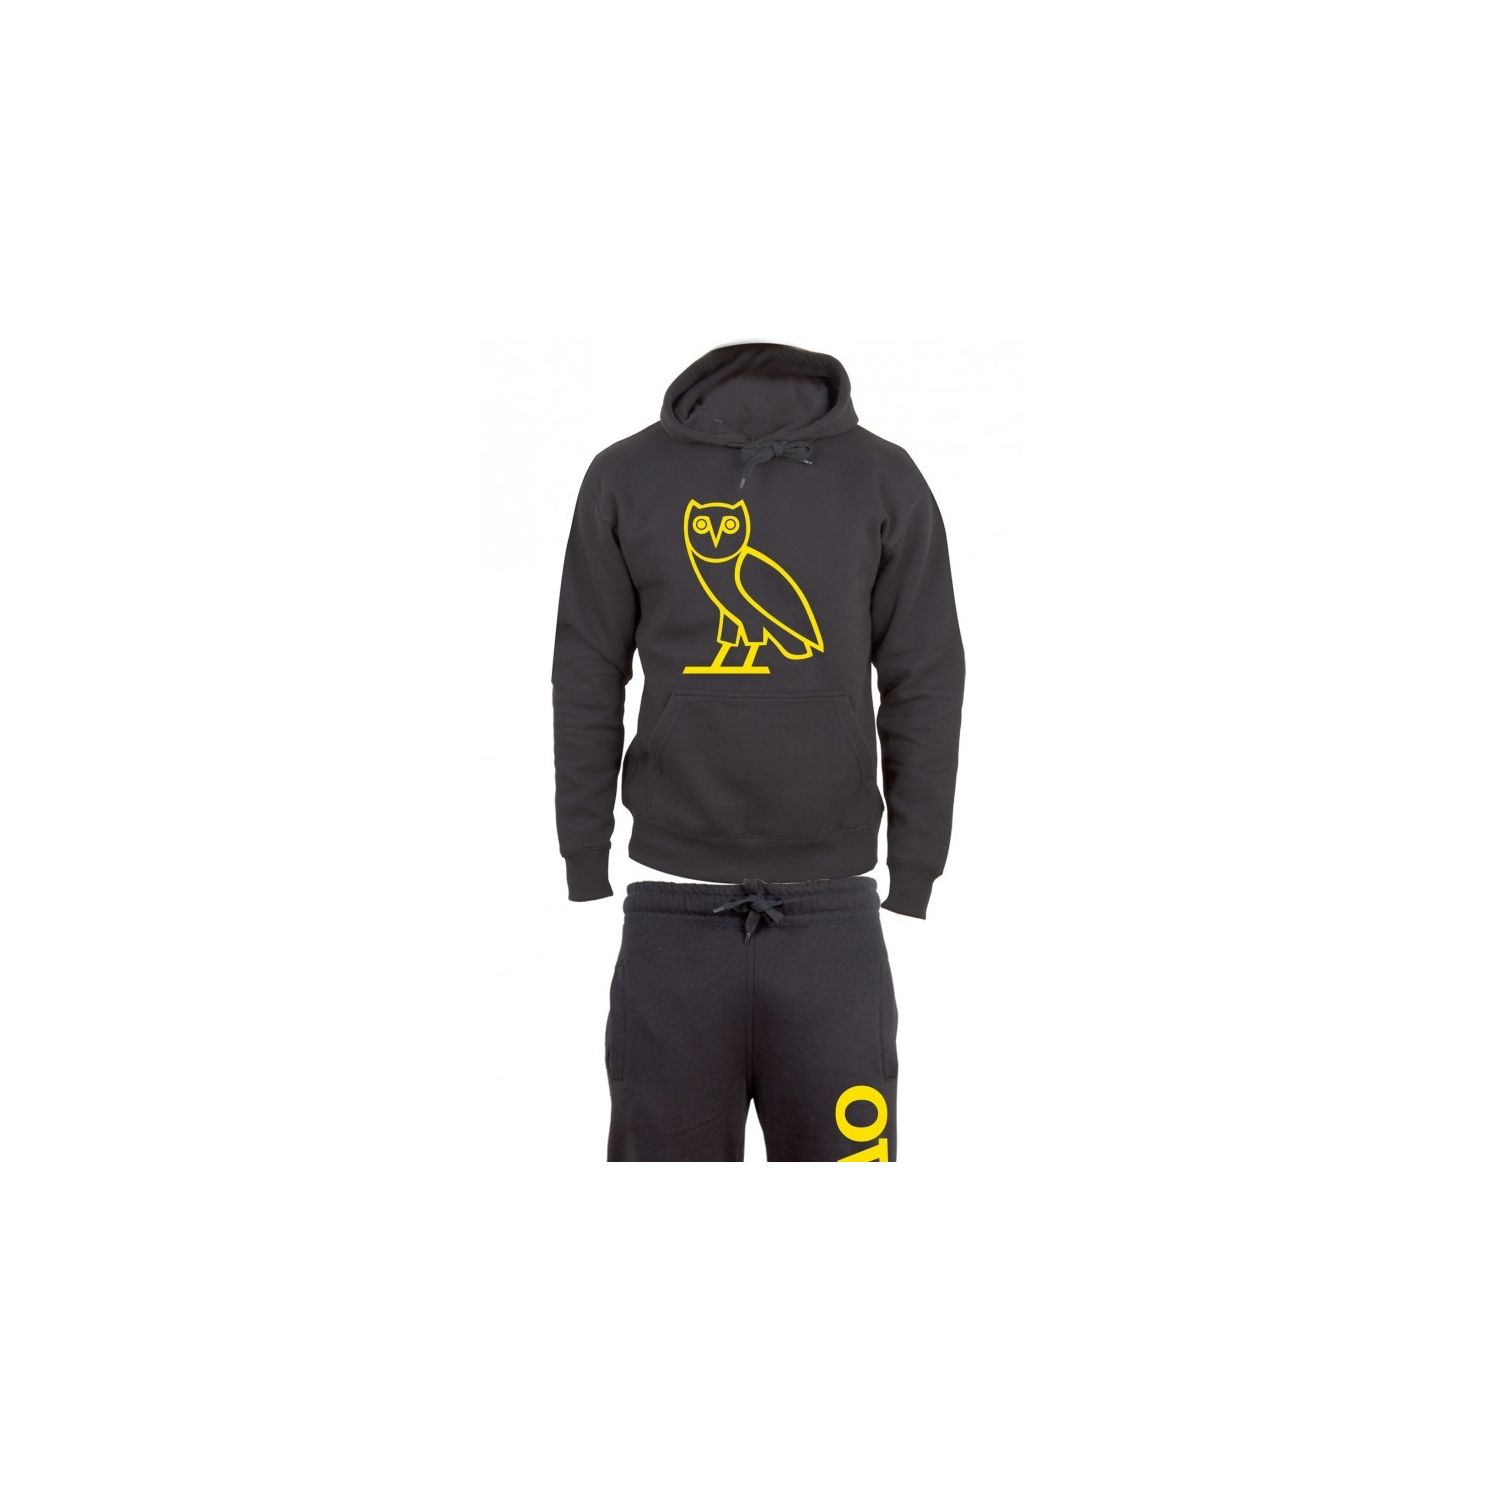 brand new 49e42 61ea5 ovo-survetement-jogging-coton.jpg